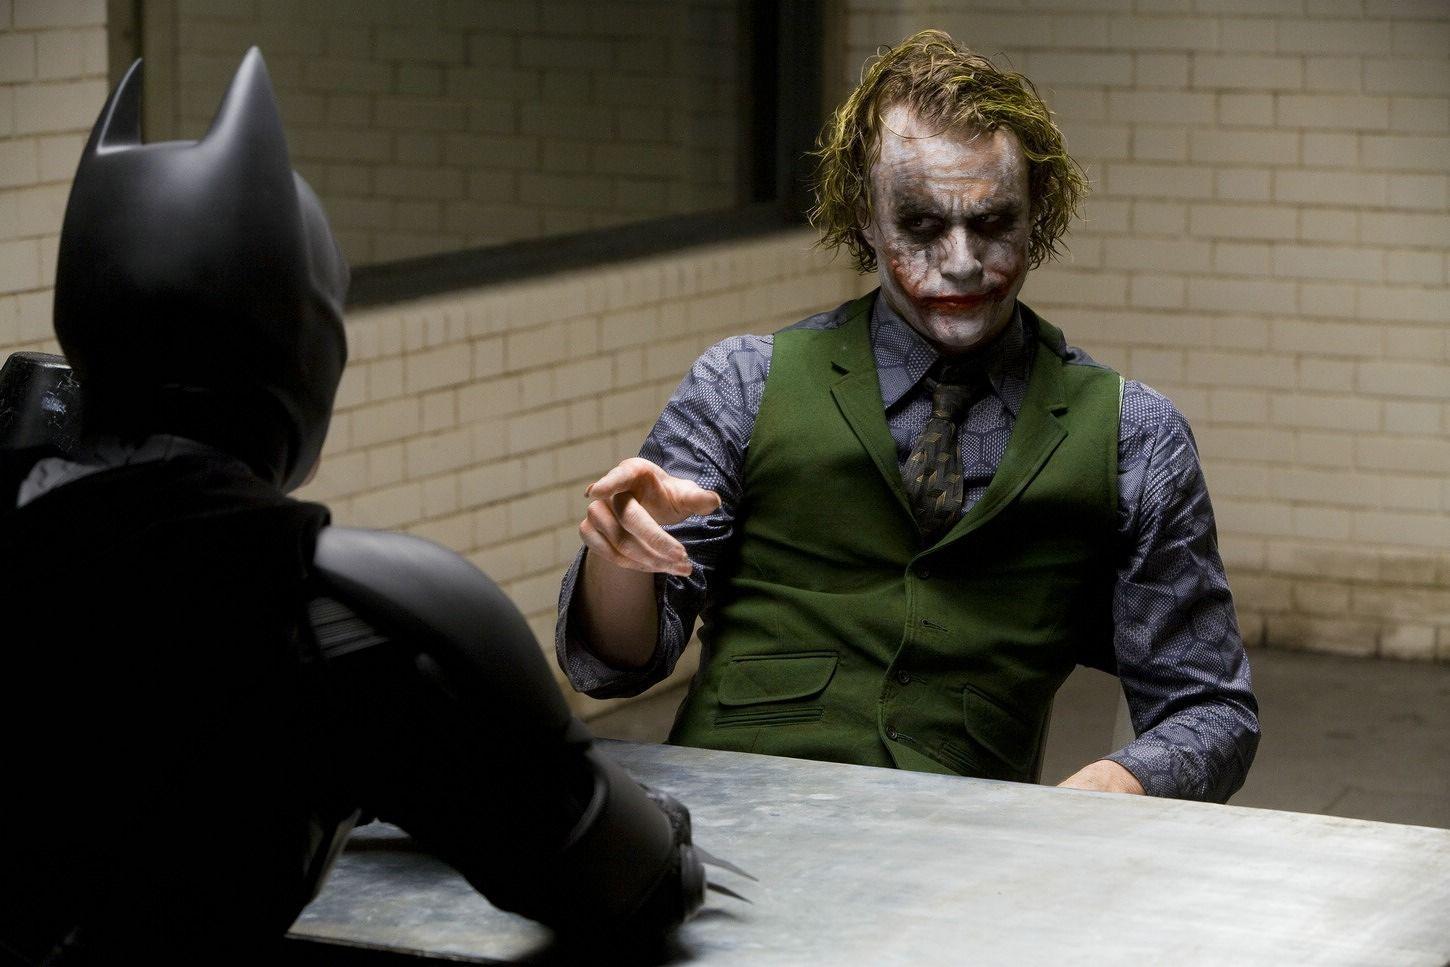 Heath Ledger was planning to return as the Joker in The Dark